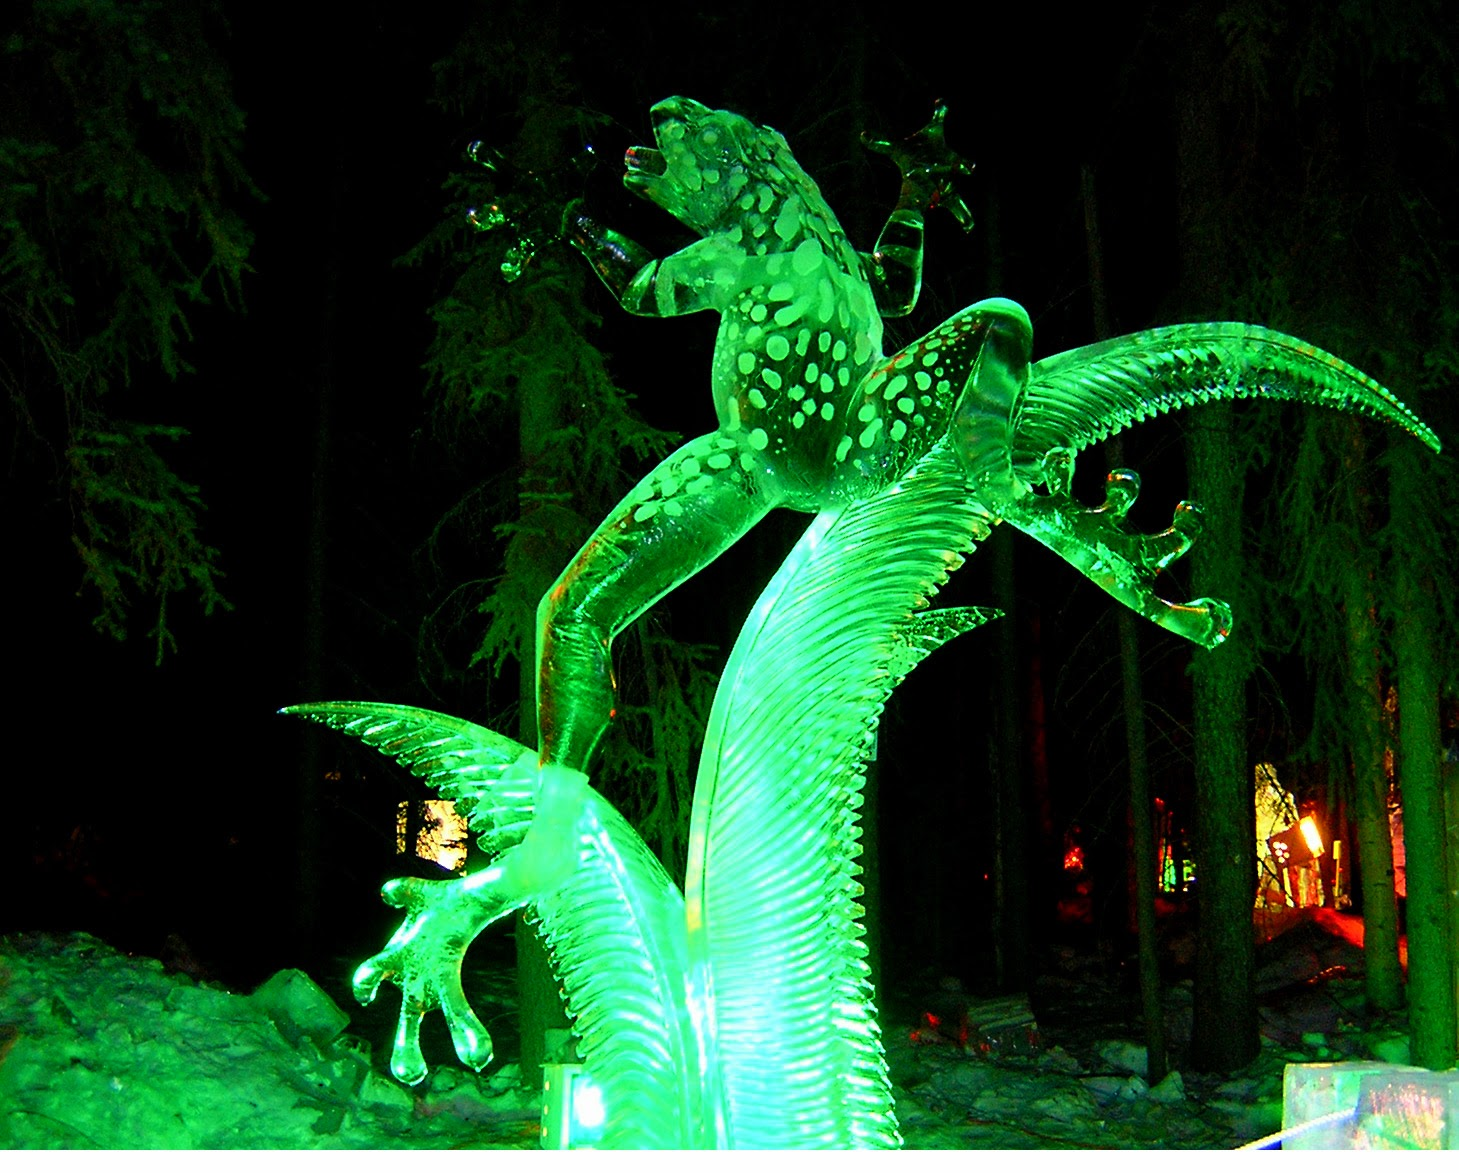 A giant frog carved from ice. It is dark and the frog is lighted in green lights.